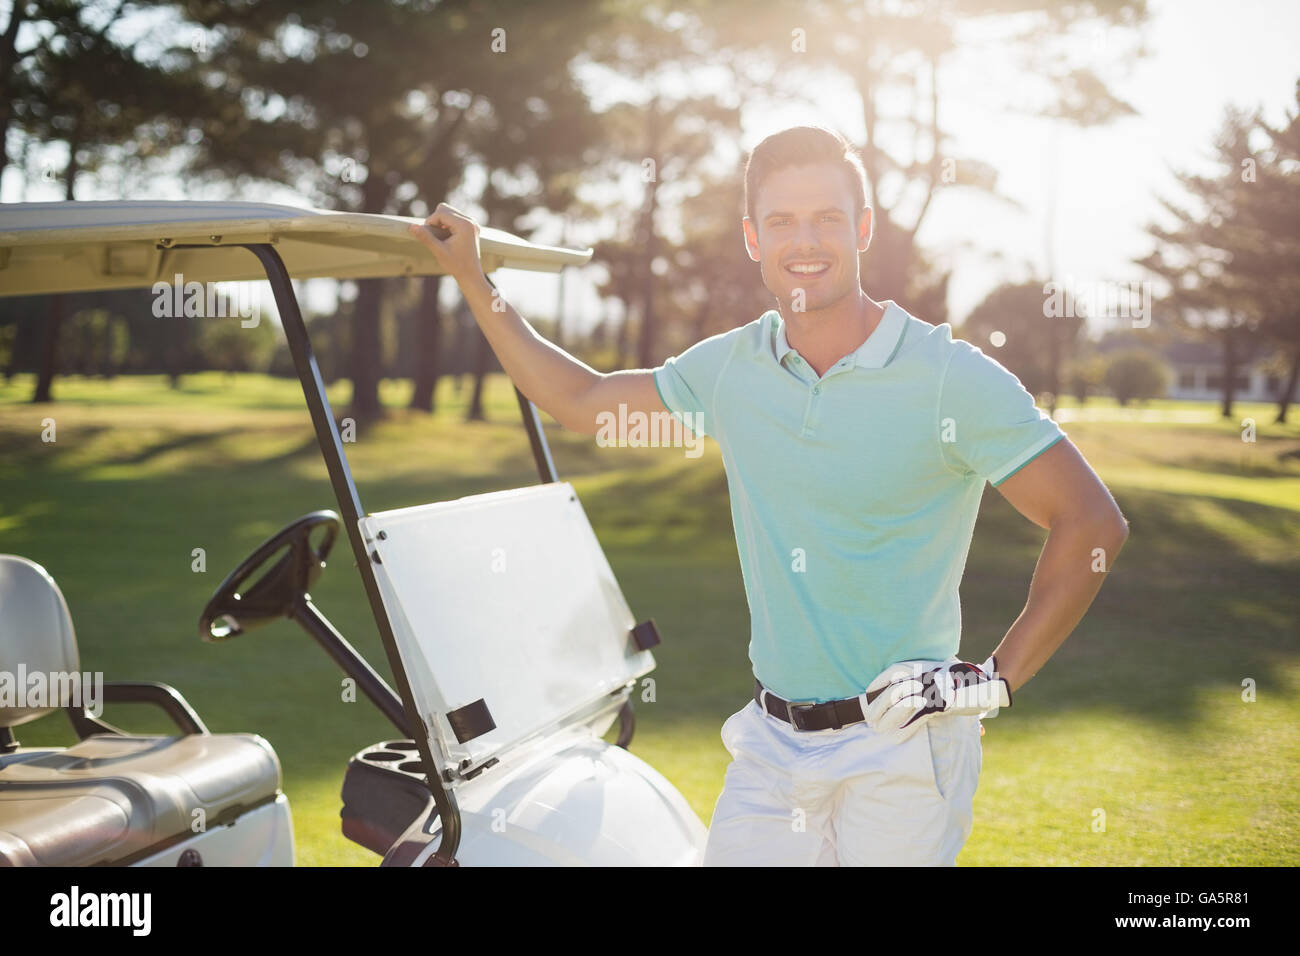 Portrait of smiling young man by golf buggy - Stock Image